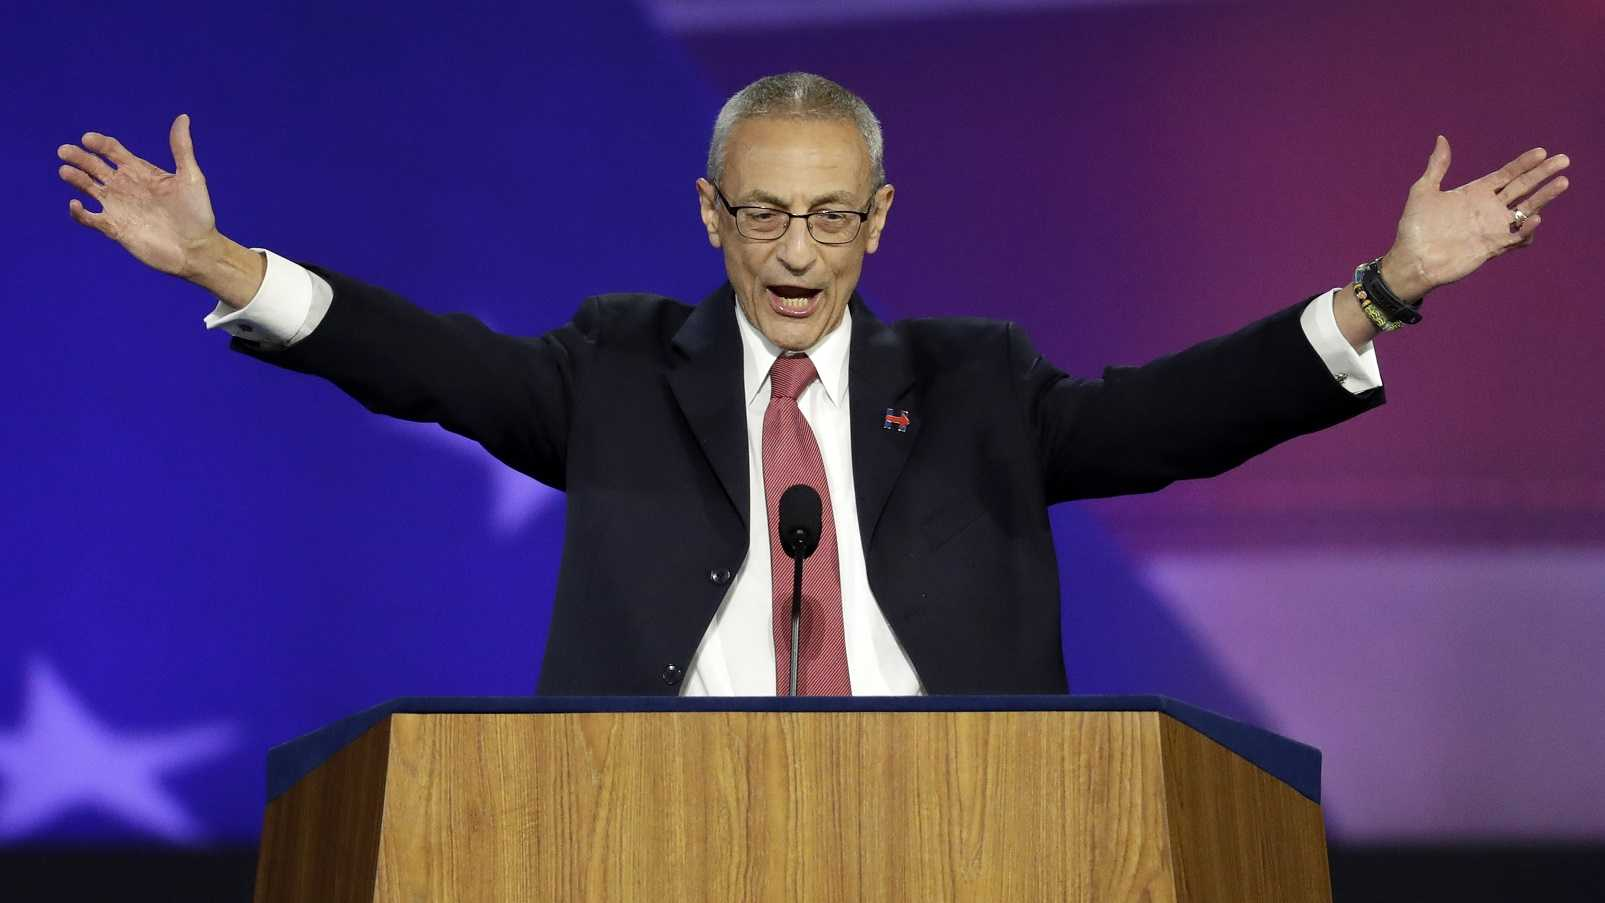 John Podesta, campaign chairman, announces that Democratic presidential nominee Hillary Clinton will not be making an appearance at Jacob Javits Center in New York.